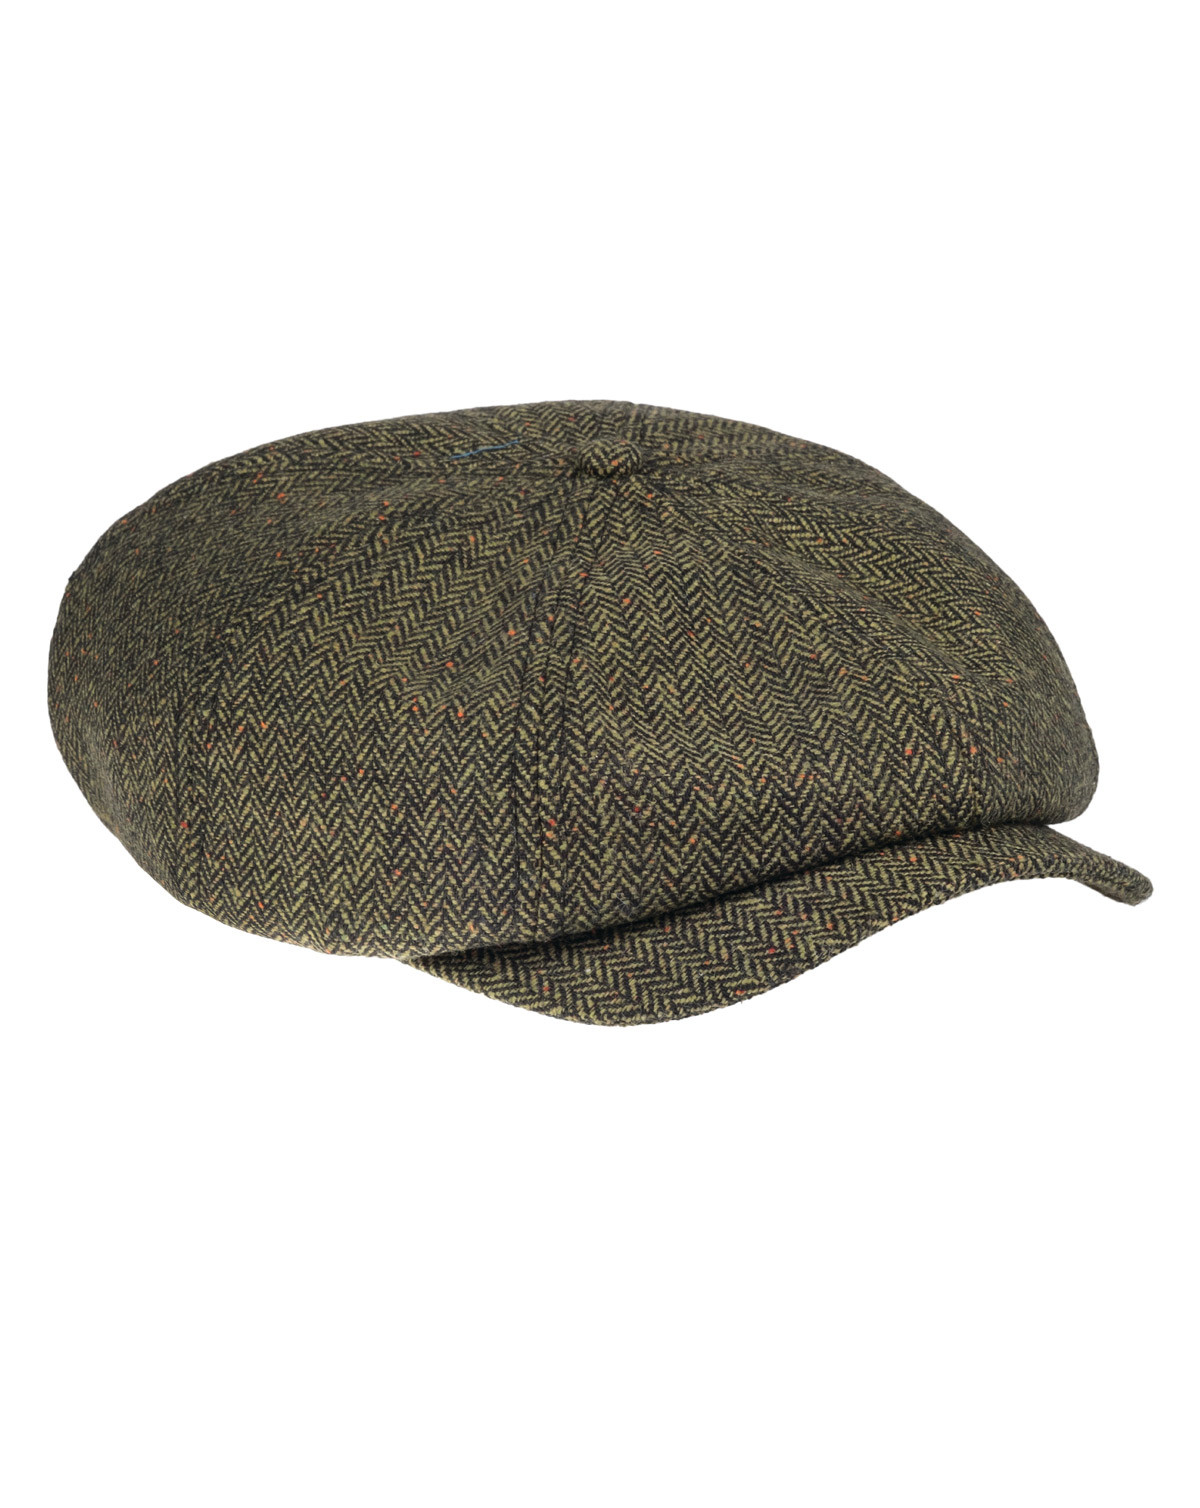 Image of   Dickies Tucson Flat Cap (Grøn, One Size)